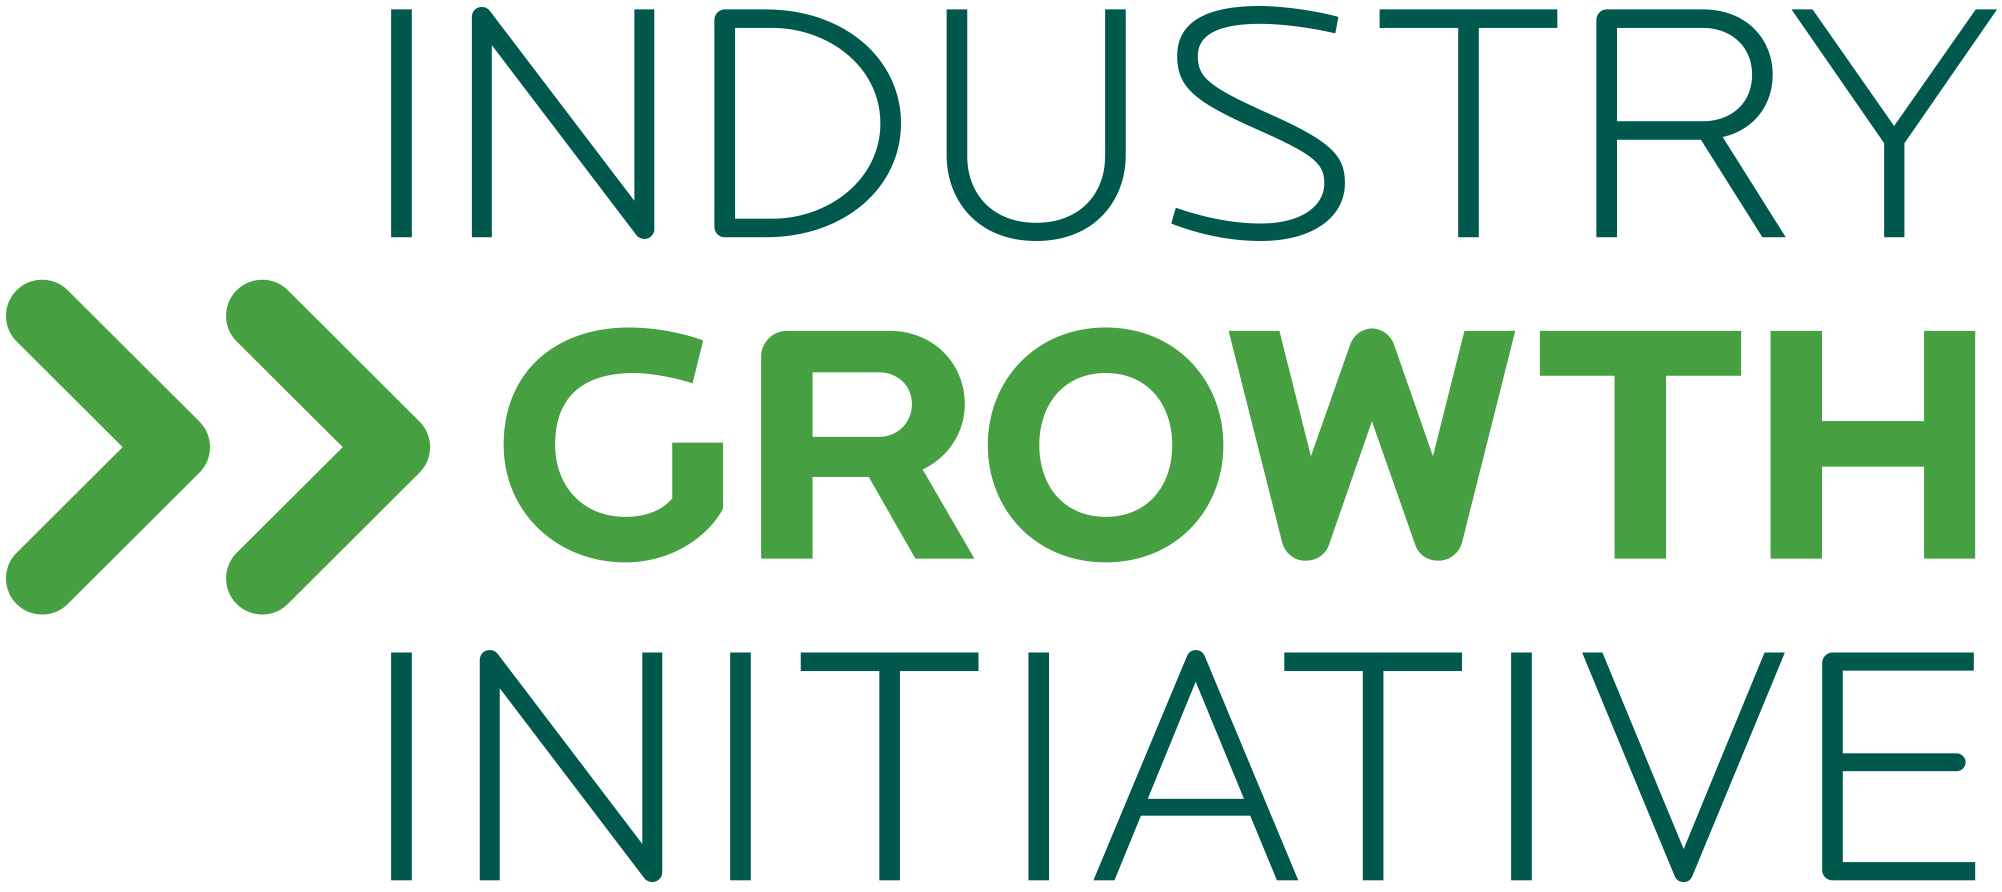 Industry Growth Initiative